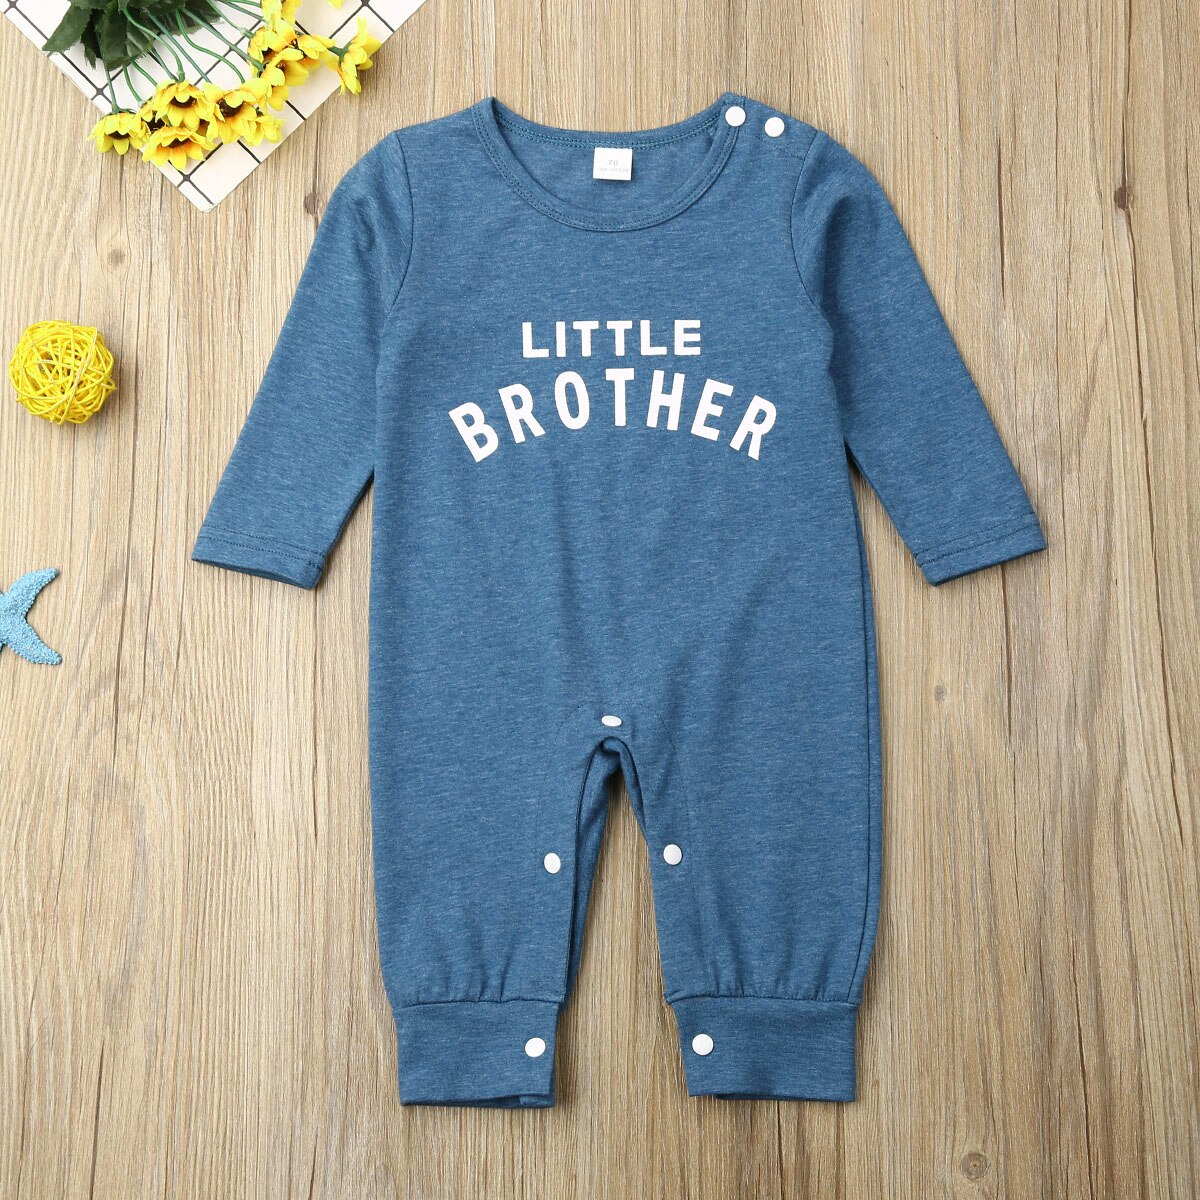 2020 Newborn Baby Boy Long Sleeve Little Brother Romper Jumpsuit One-Piece Clothes Baby Boy Girls Outfit Baby Clothes